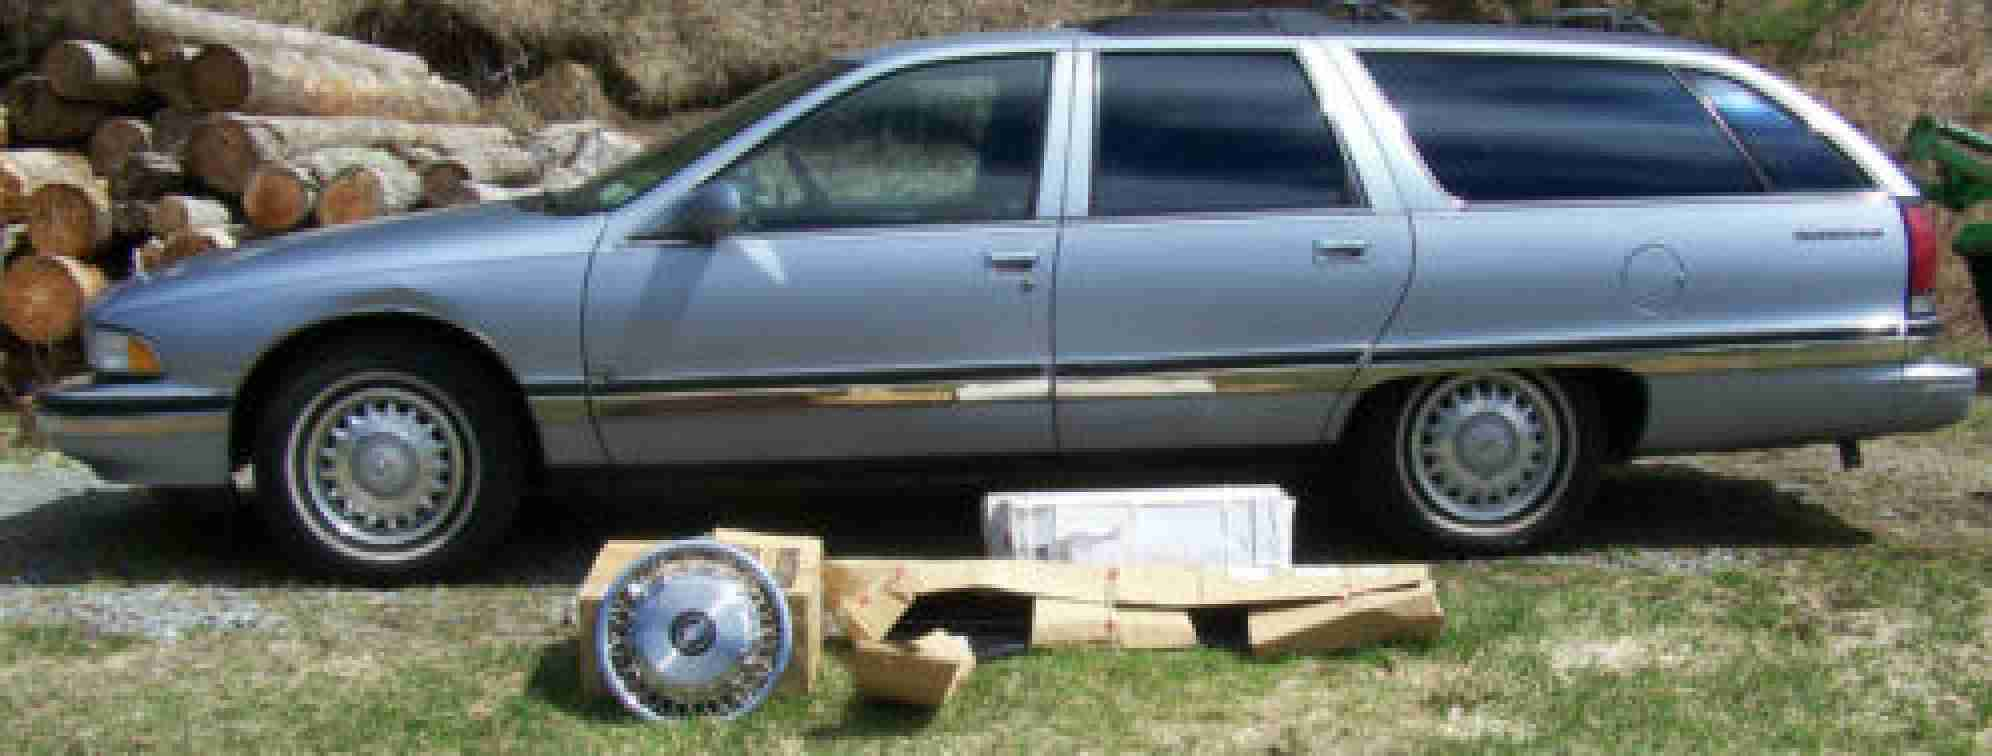 Buick Century Custom Only 42k Miles 100 Florida 0 Accidents 2003